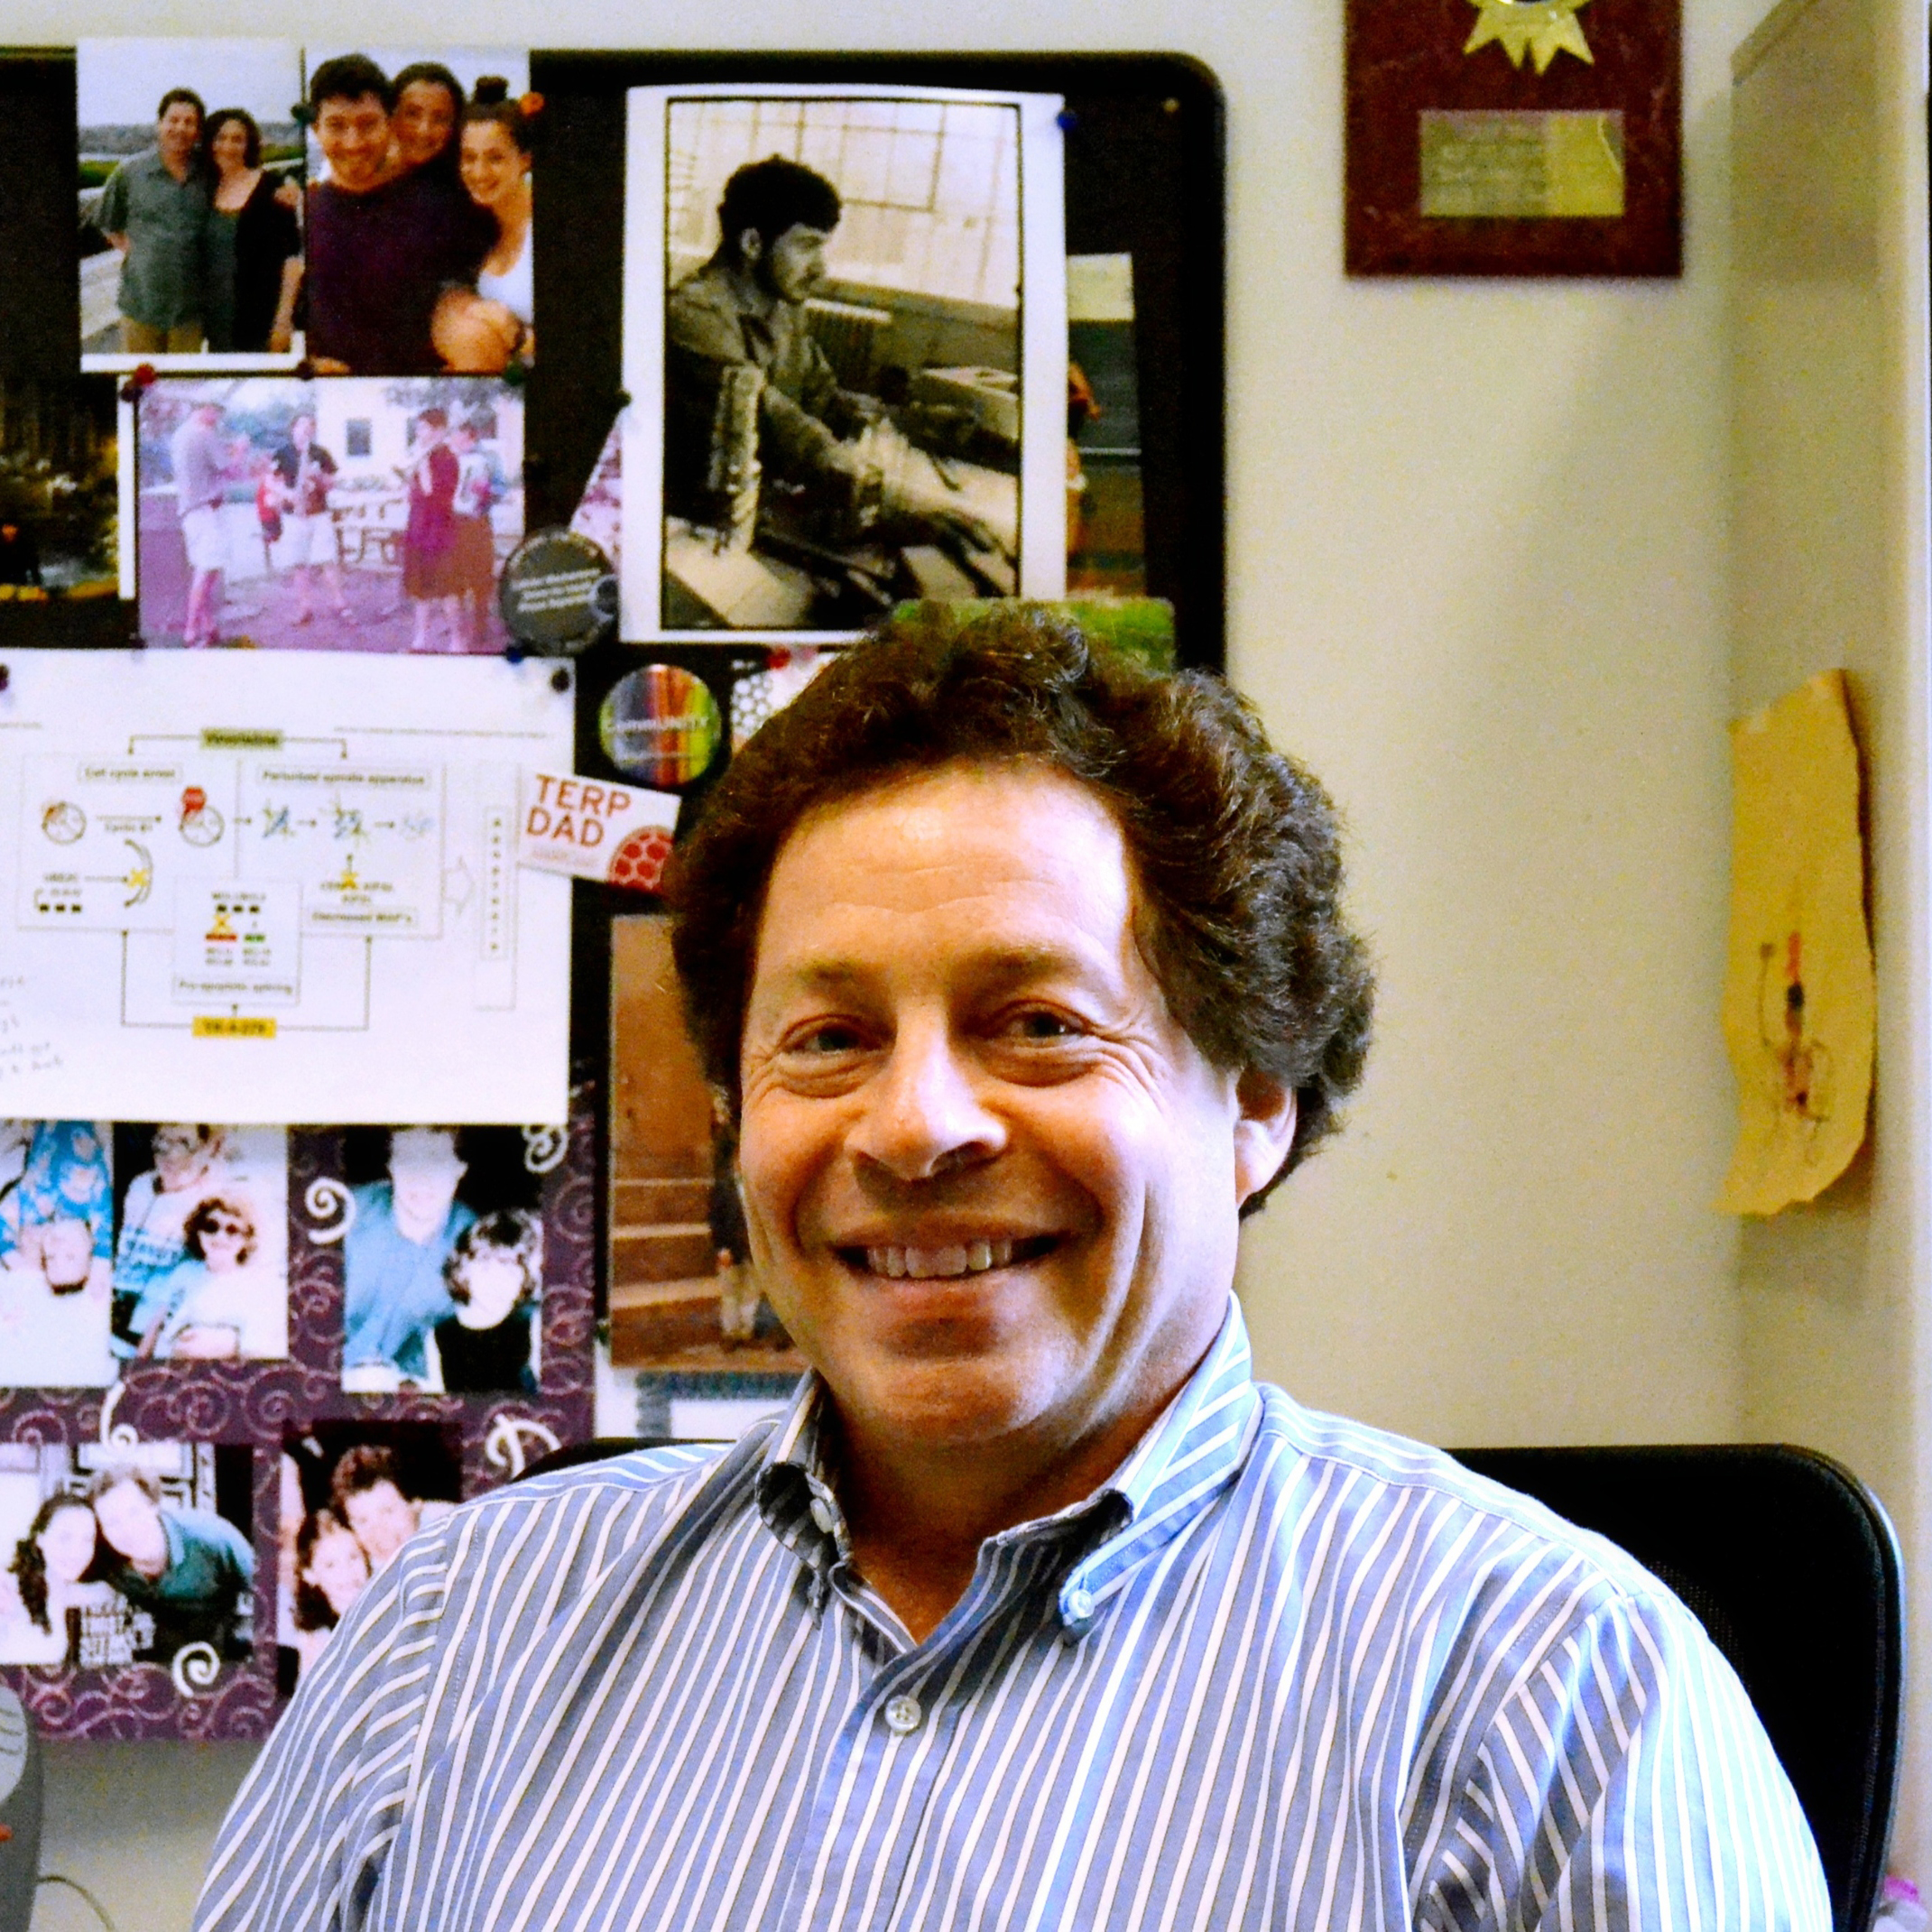 Headshot of Jeffrey Toretsky sitting in his office